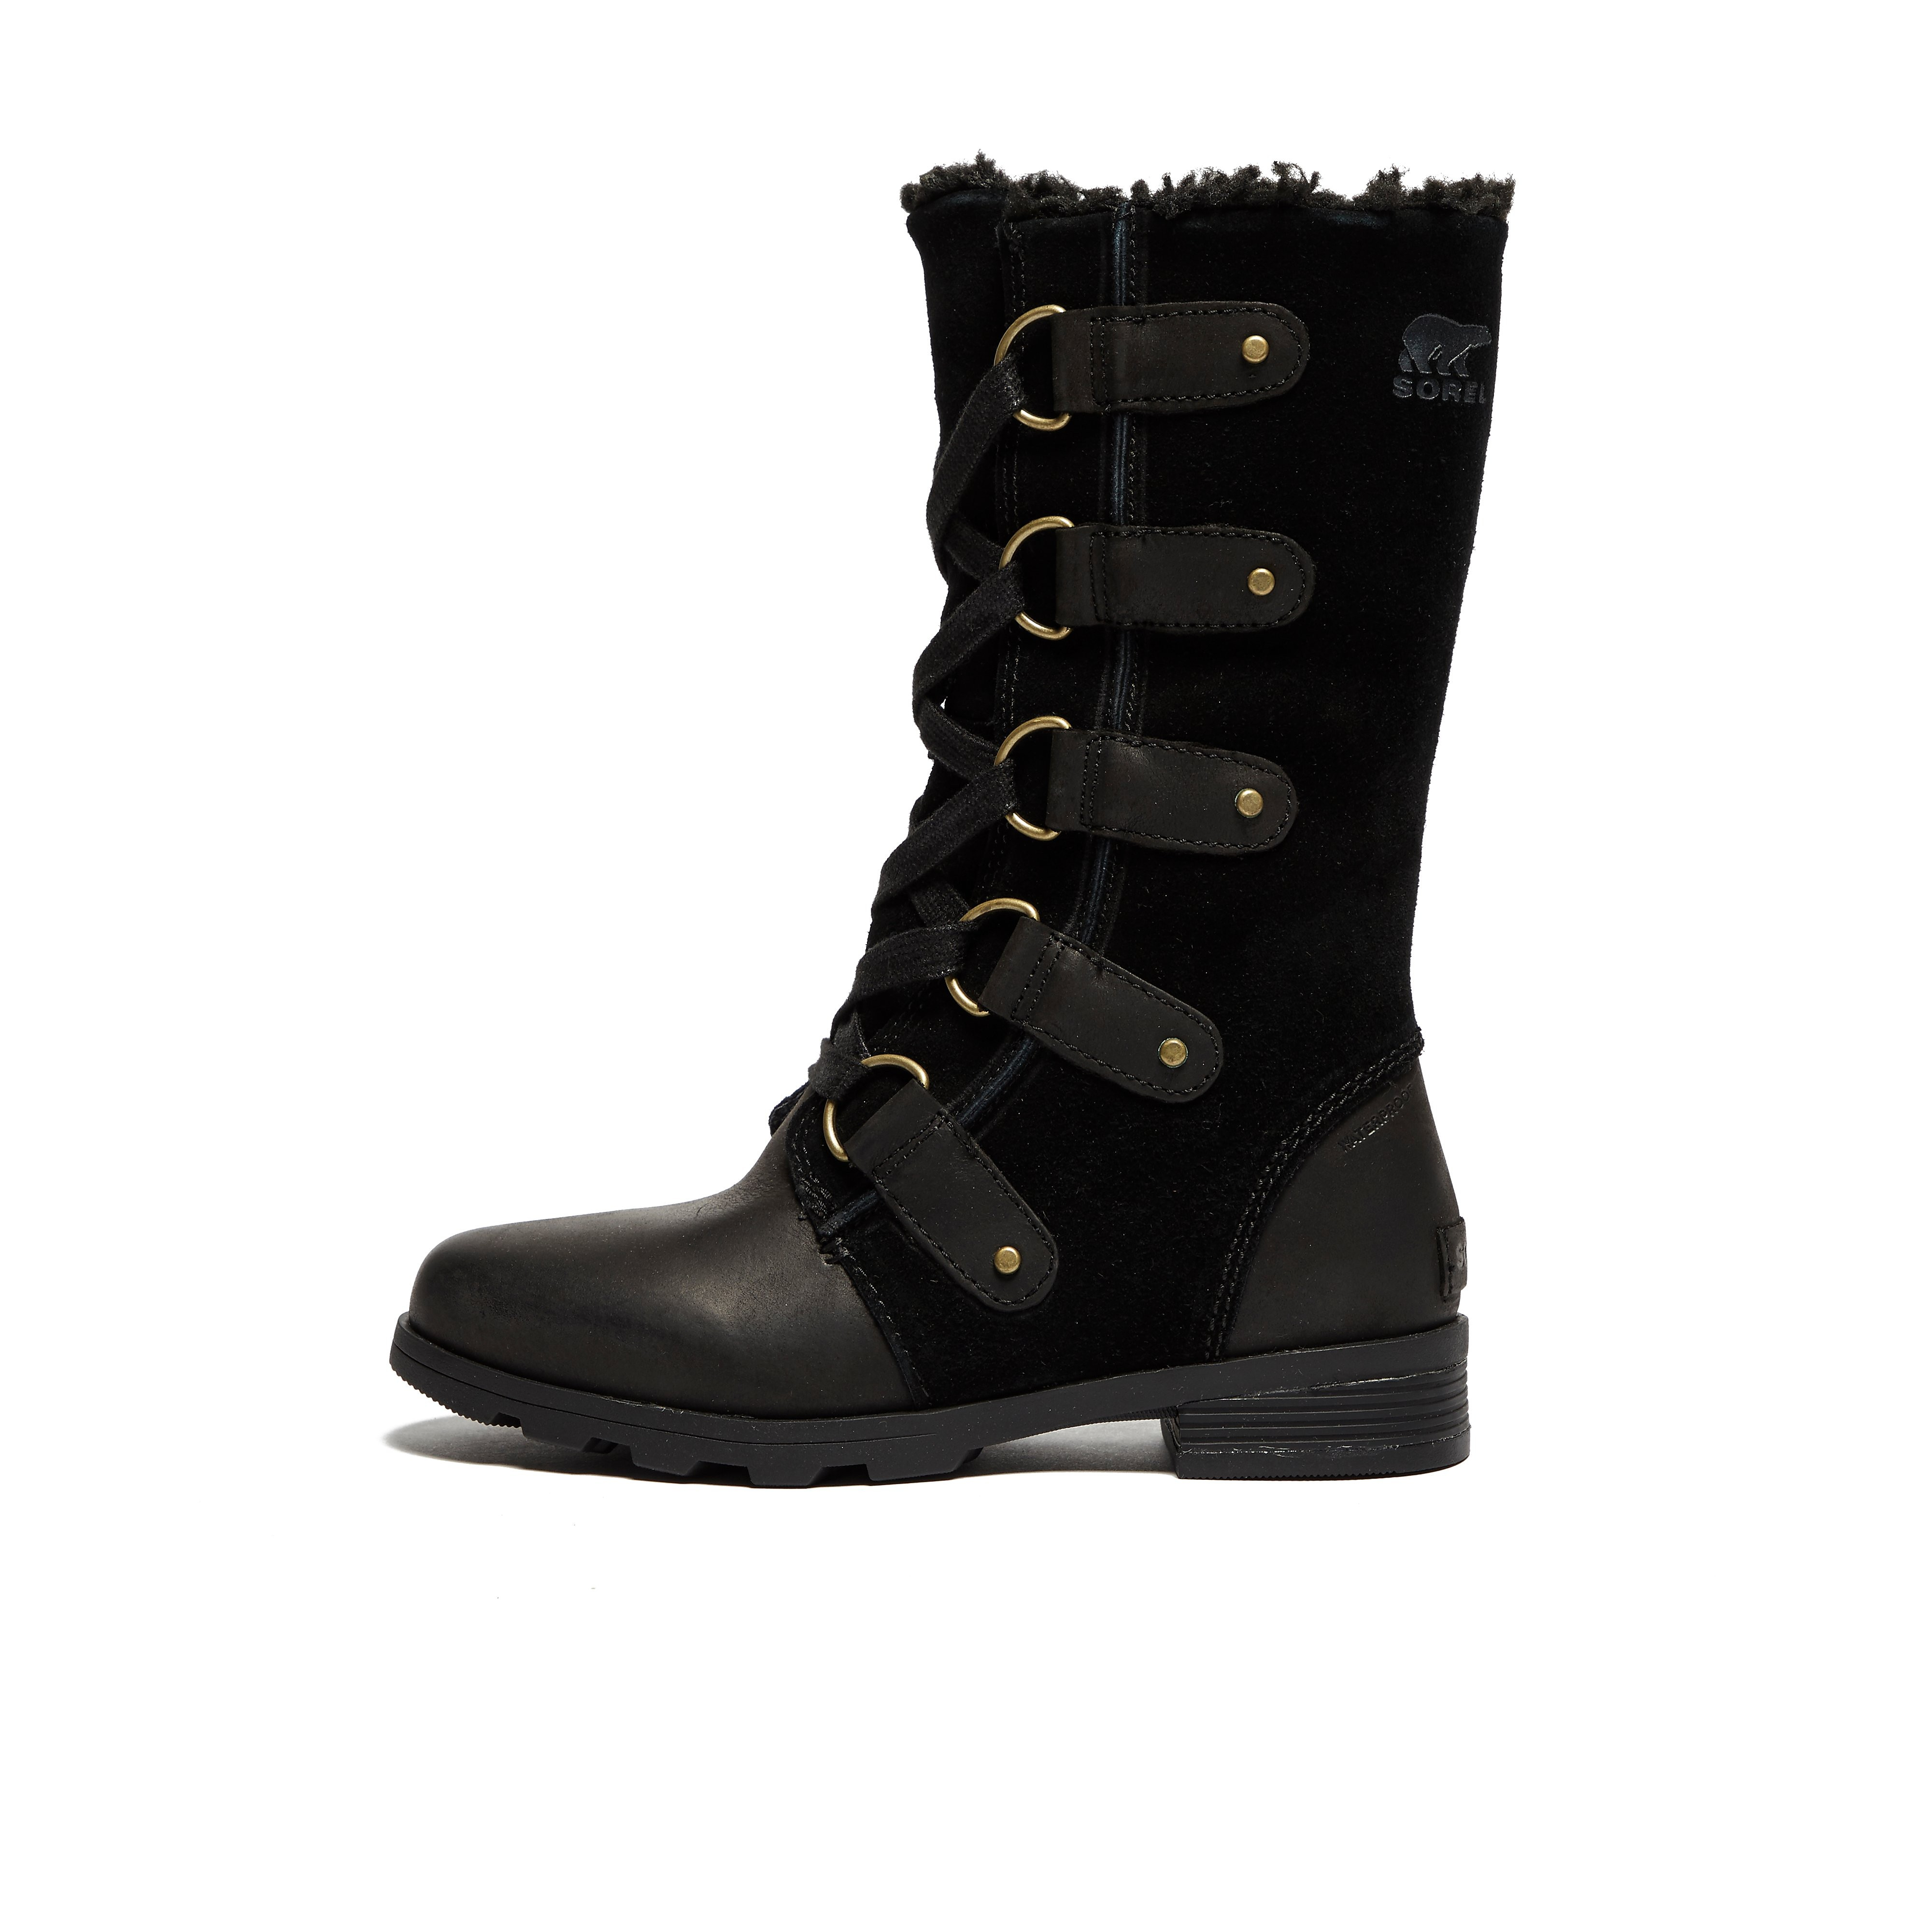 Sorel Women's Emelie Lace Up Boot